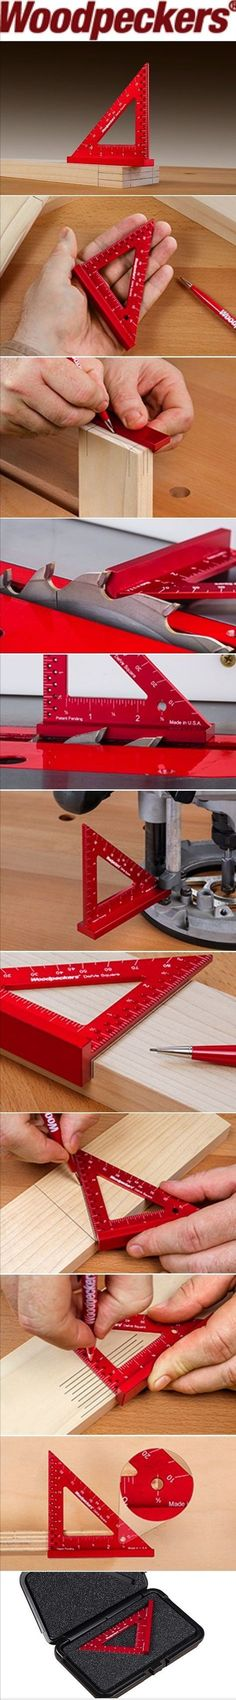 """Woodpeckers - Woodworking Squares  :: Many practical uses packed into a square not even 4"""" long. Joinery Layout Wiz Gauging Tool Measureless Marking Machine Set Up Measurement Tool Angle Marking And More"""